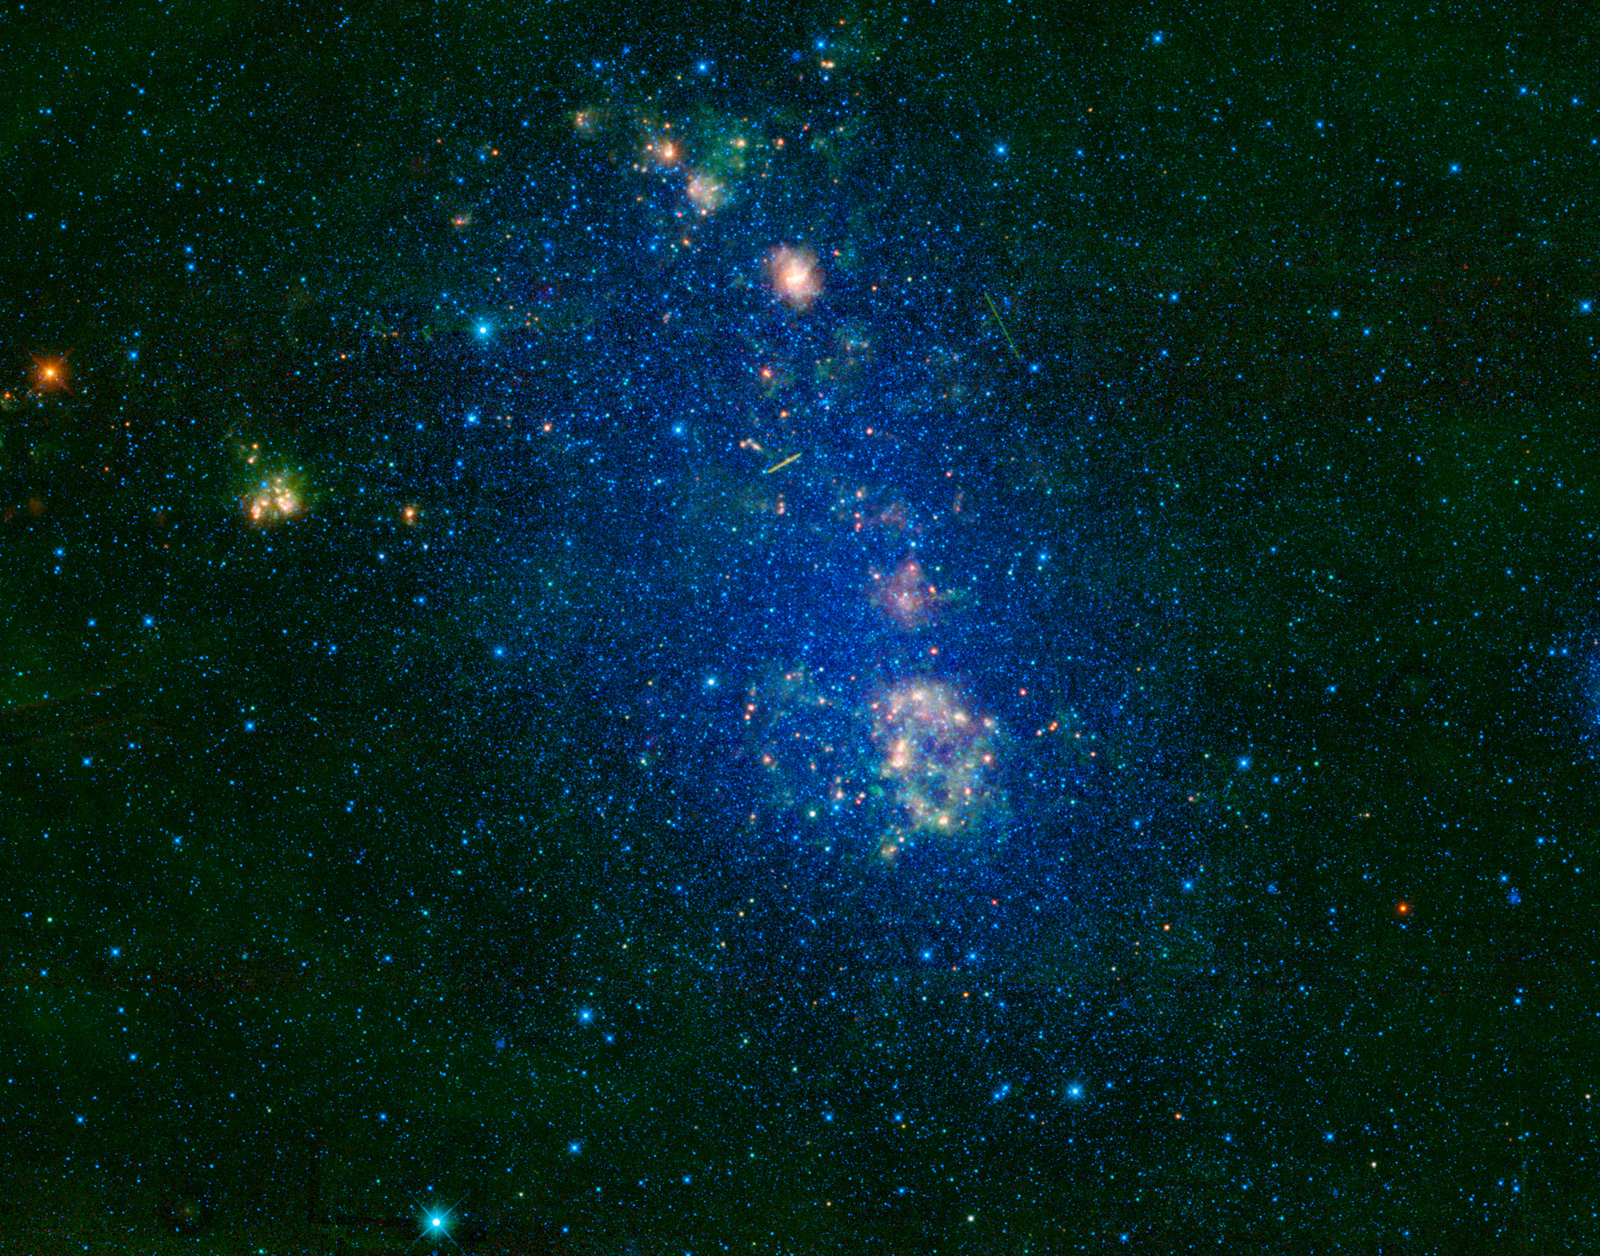 This image captured by NASA's Wide-field Infrared Survey Explorer (WISE) highlights the Small Magellanic Cloud.  Also known as NGC 292, the Small Magellanic Cloud is a small galaxy about 200,000 light-years away.